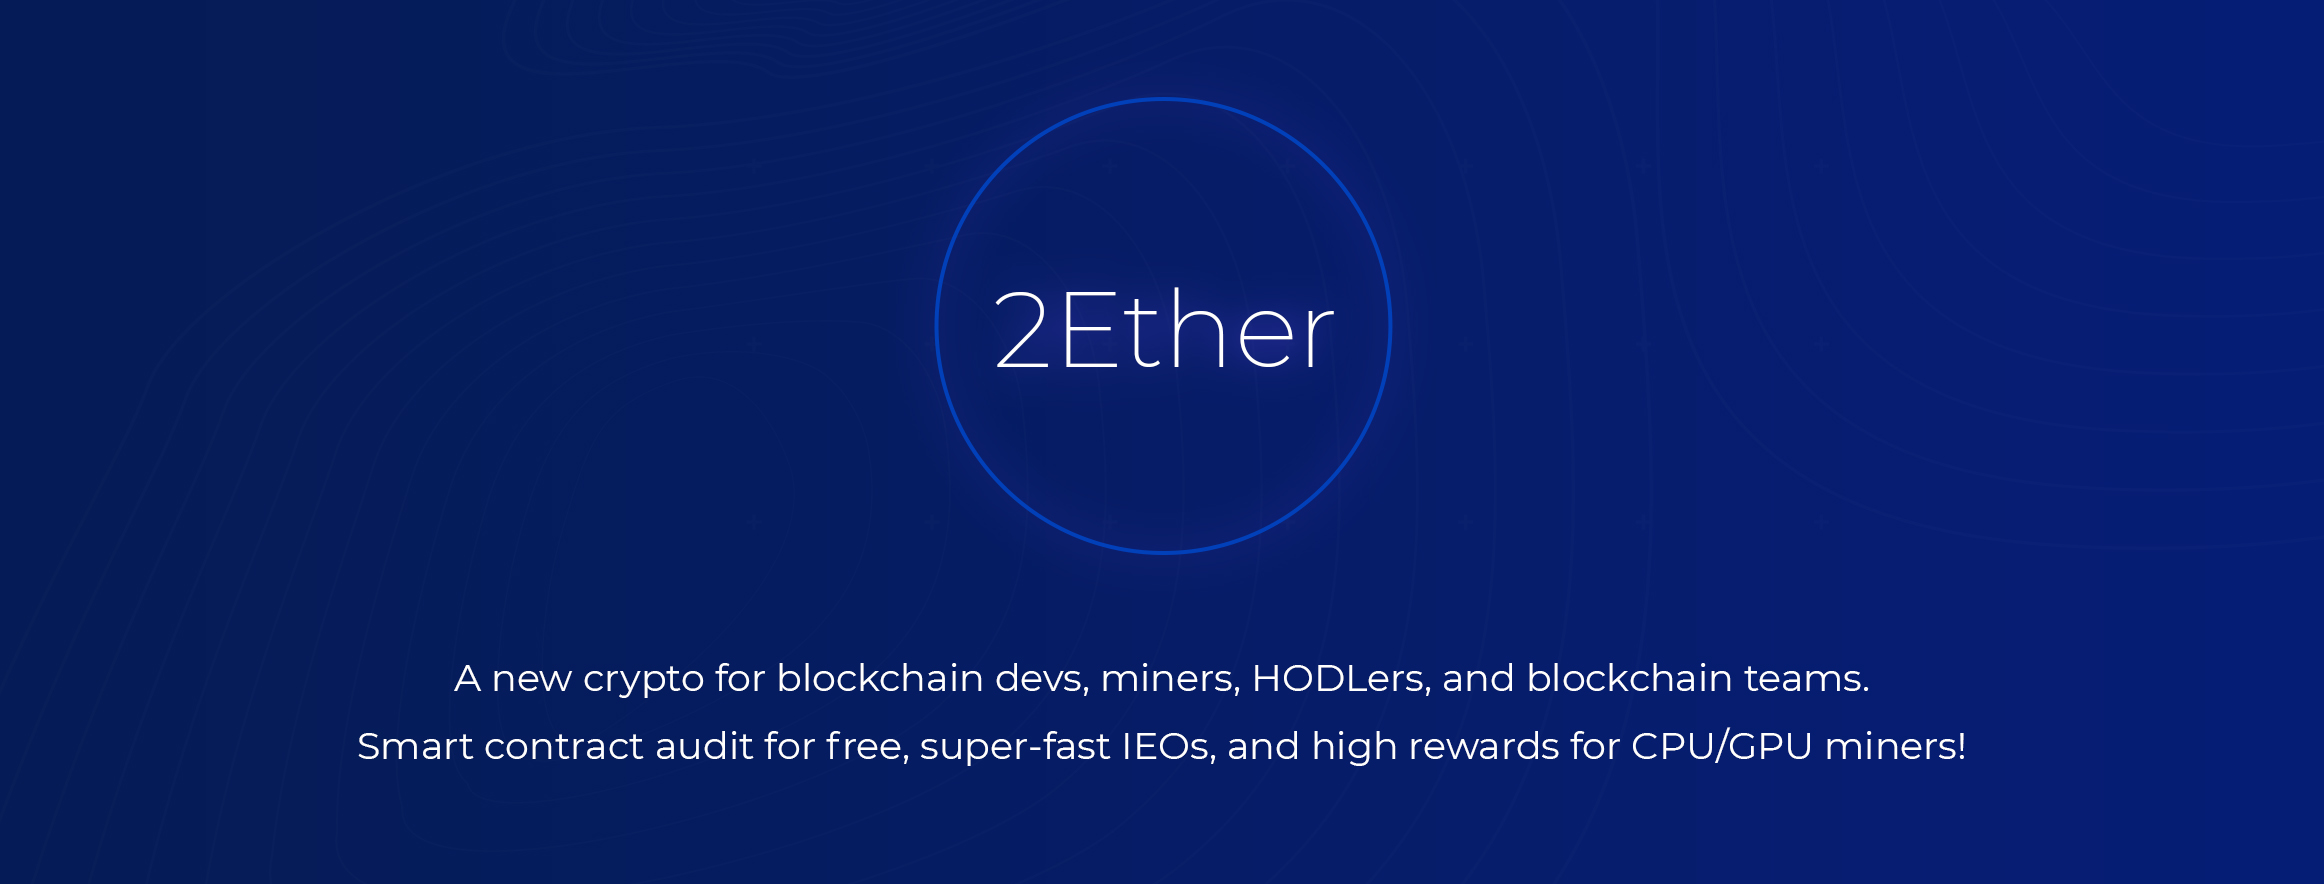 how to create an ico ethereum